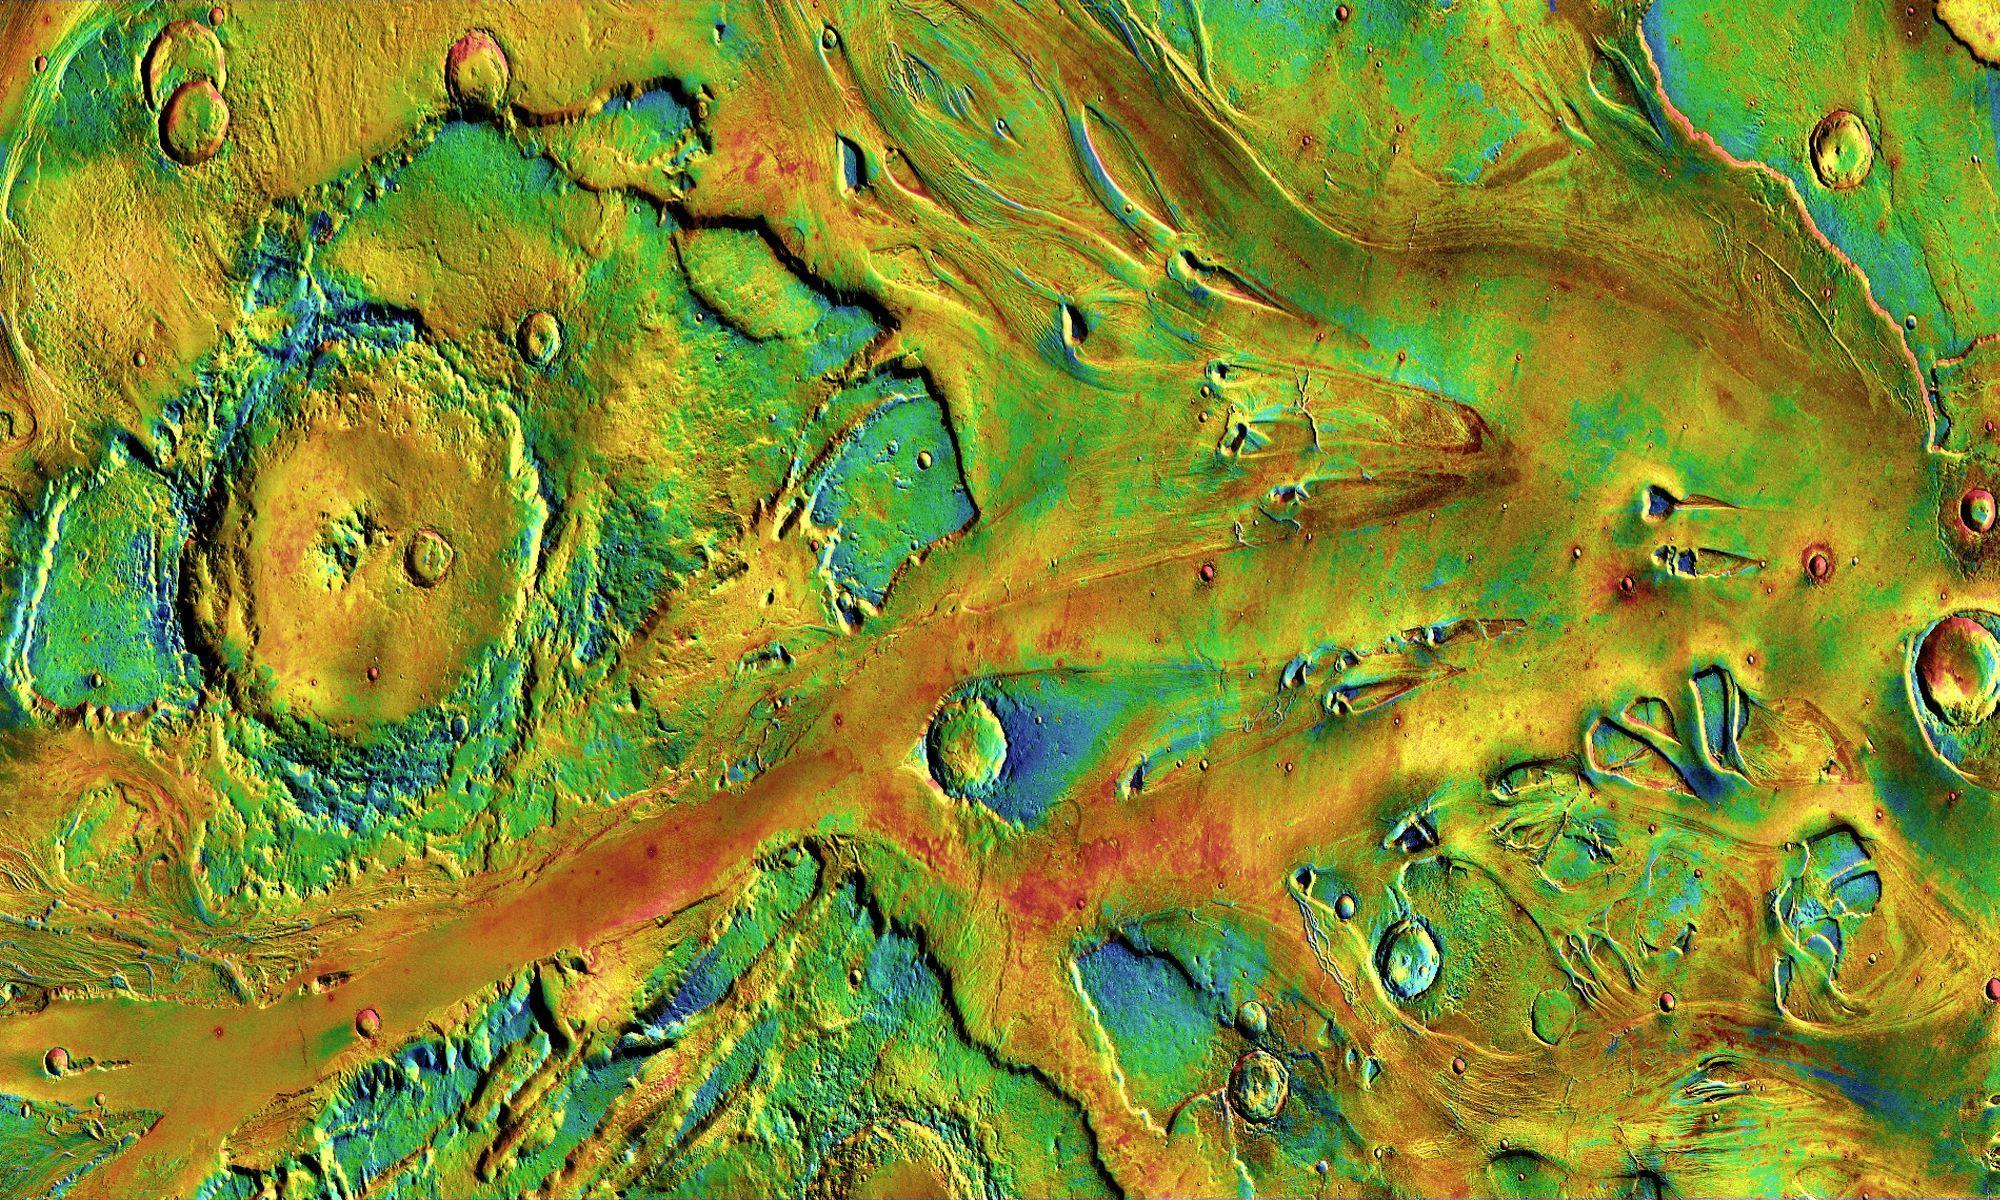 Mars_images-satellite_Kasei_Channels_photos-by-NASA-and-ESA_best-selection-photography